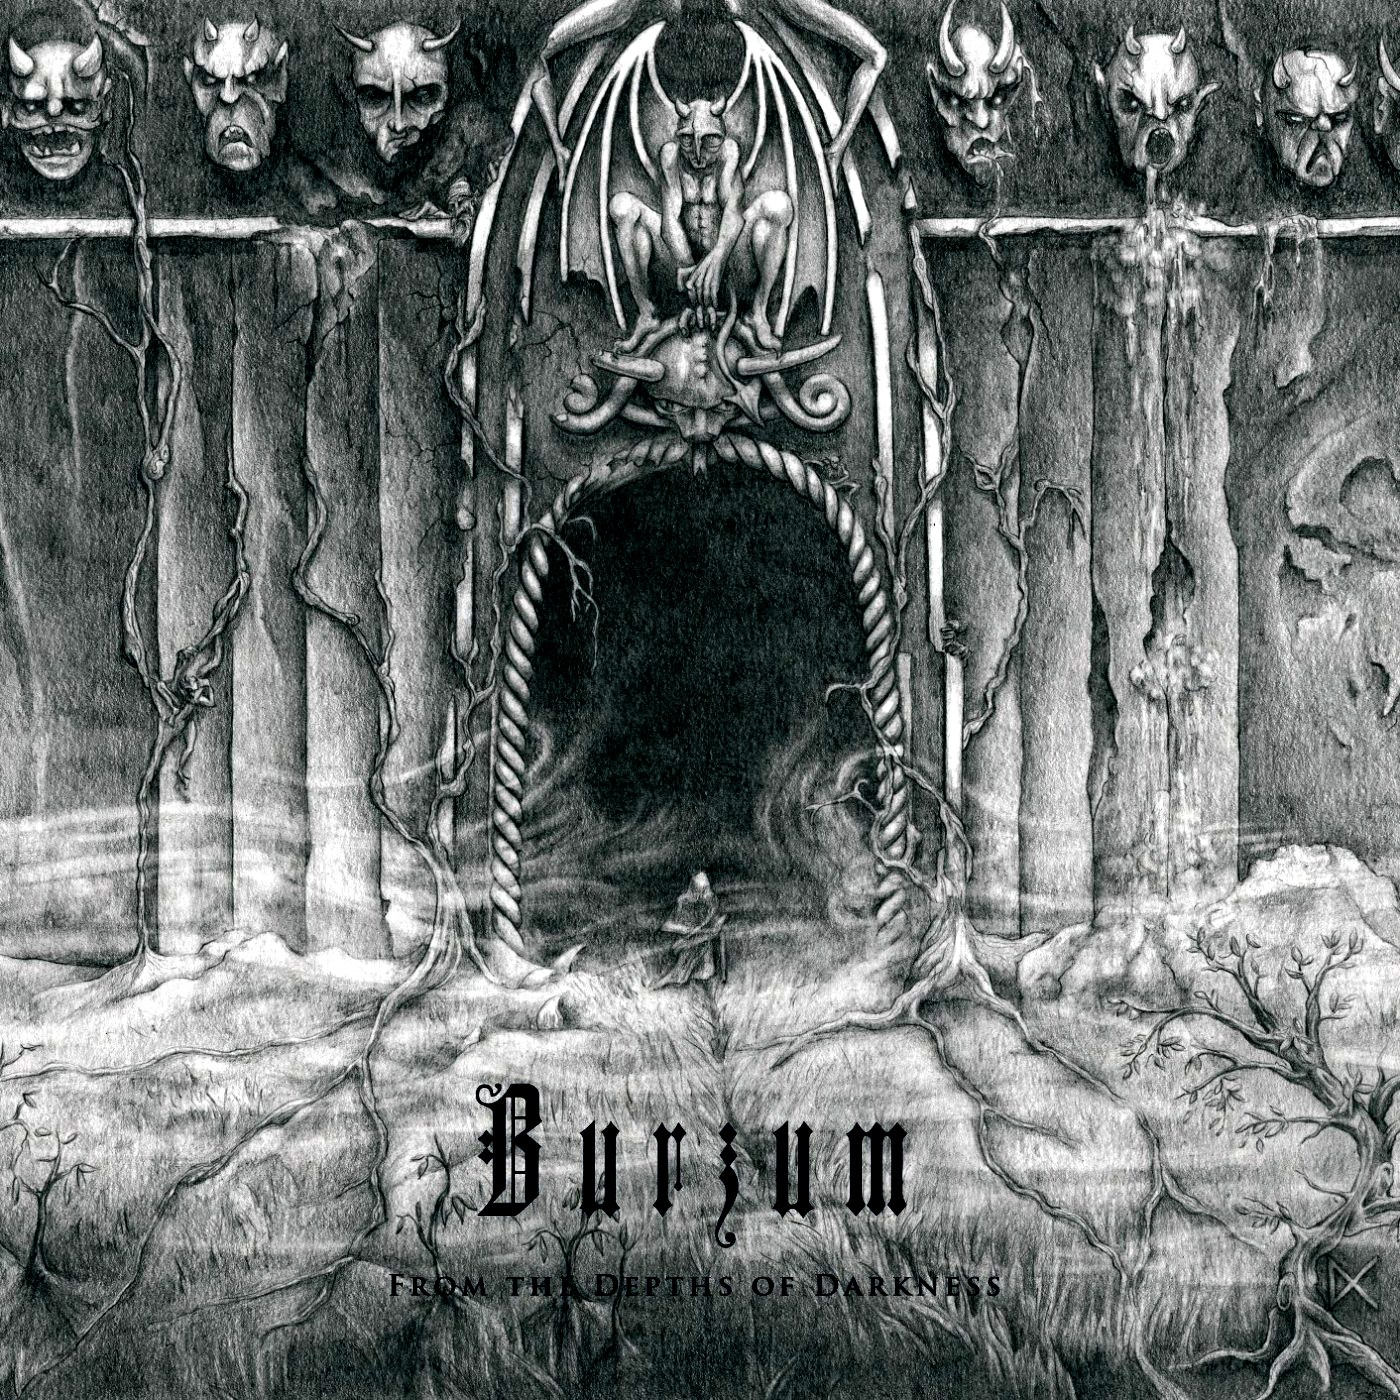 Review for Burzum - From the Depths of Darkness